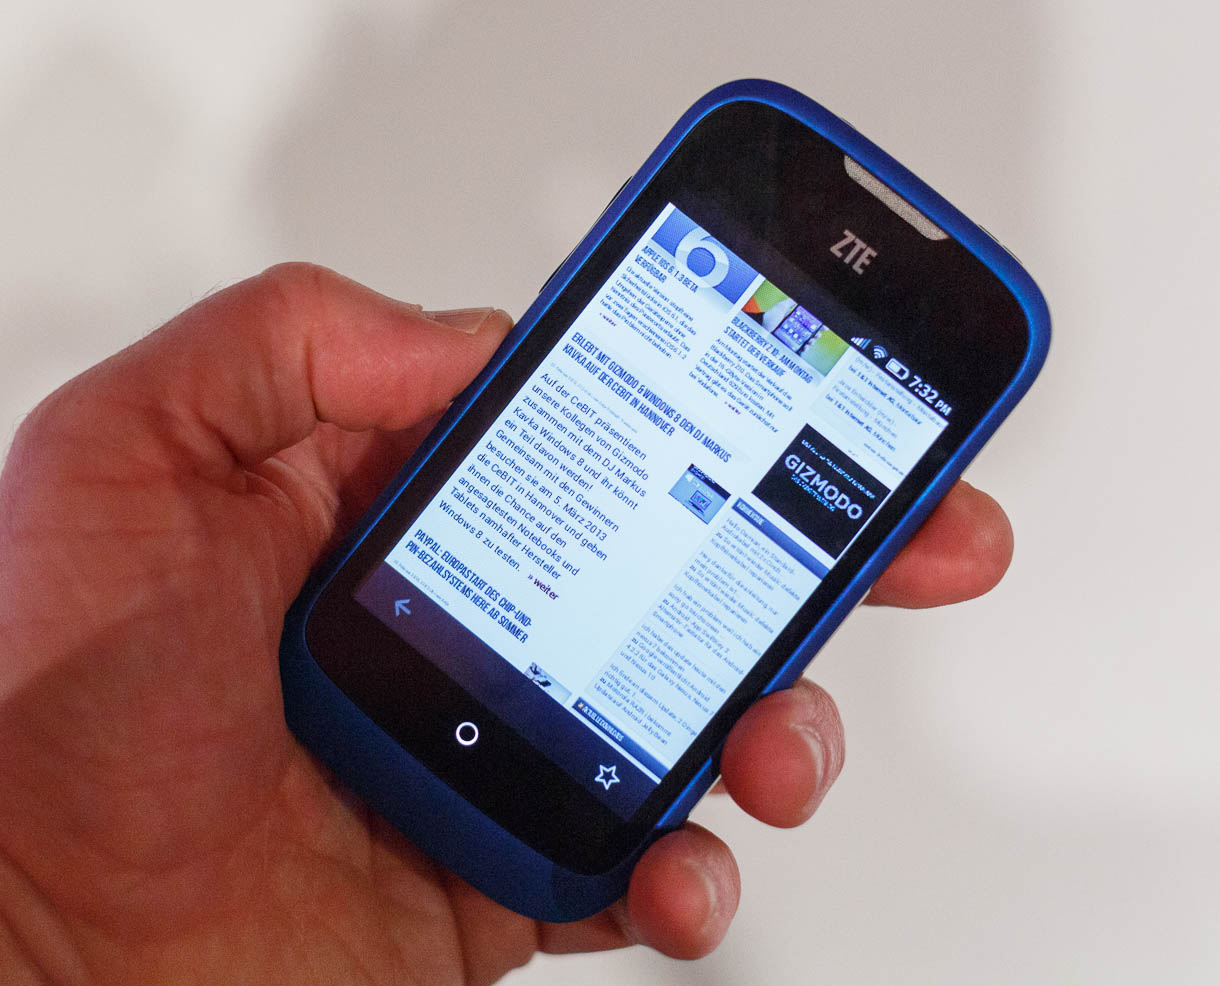 Powered by Firefox OS, the ZTE Open naturally includes the Mozilla browser, too.